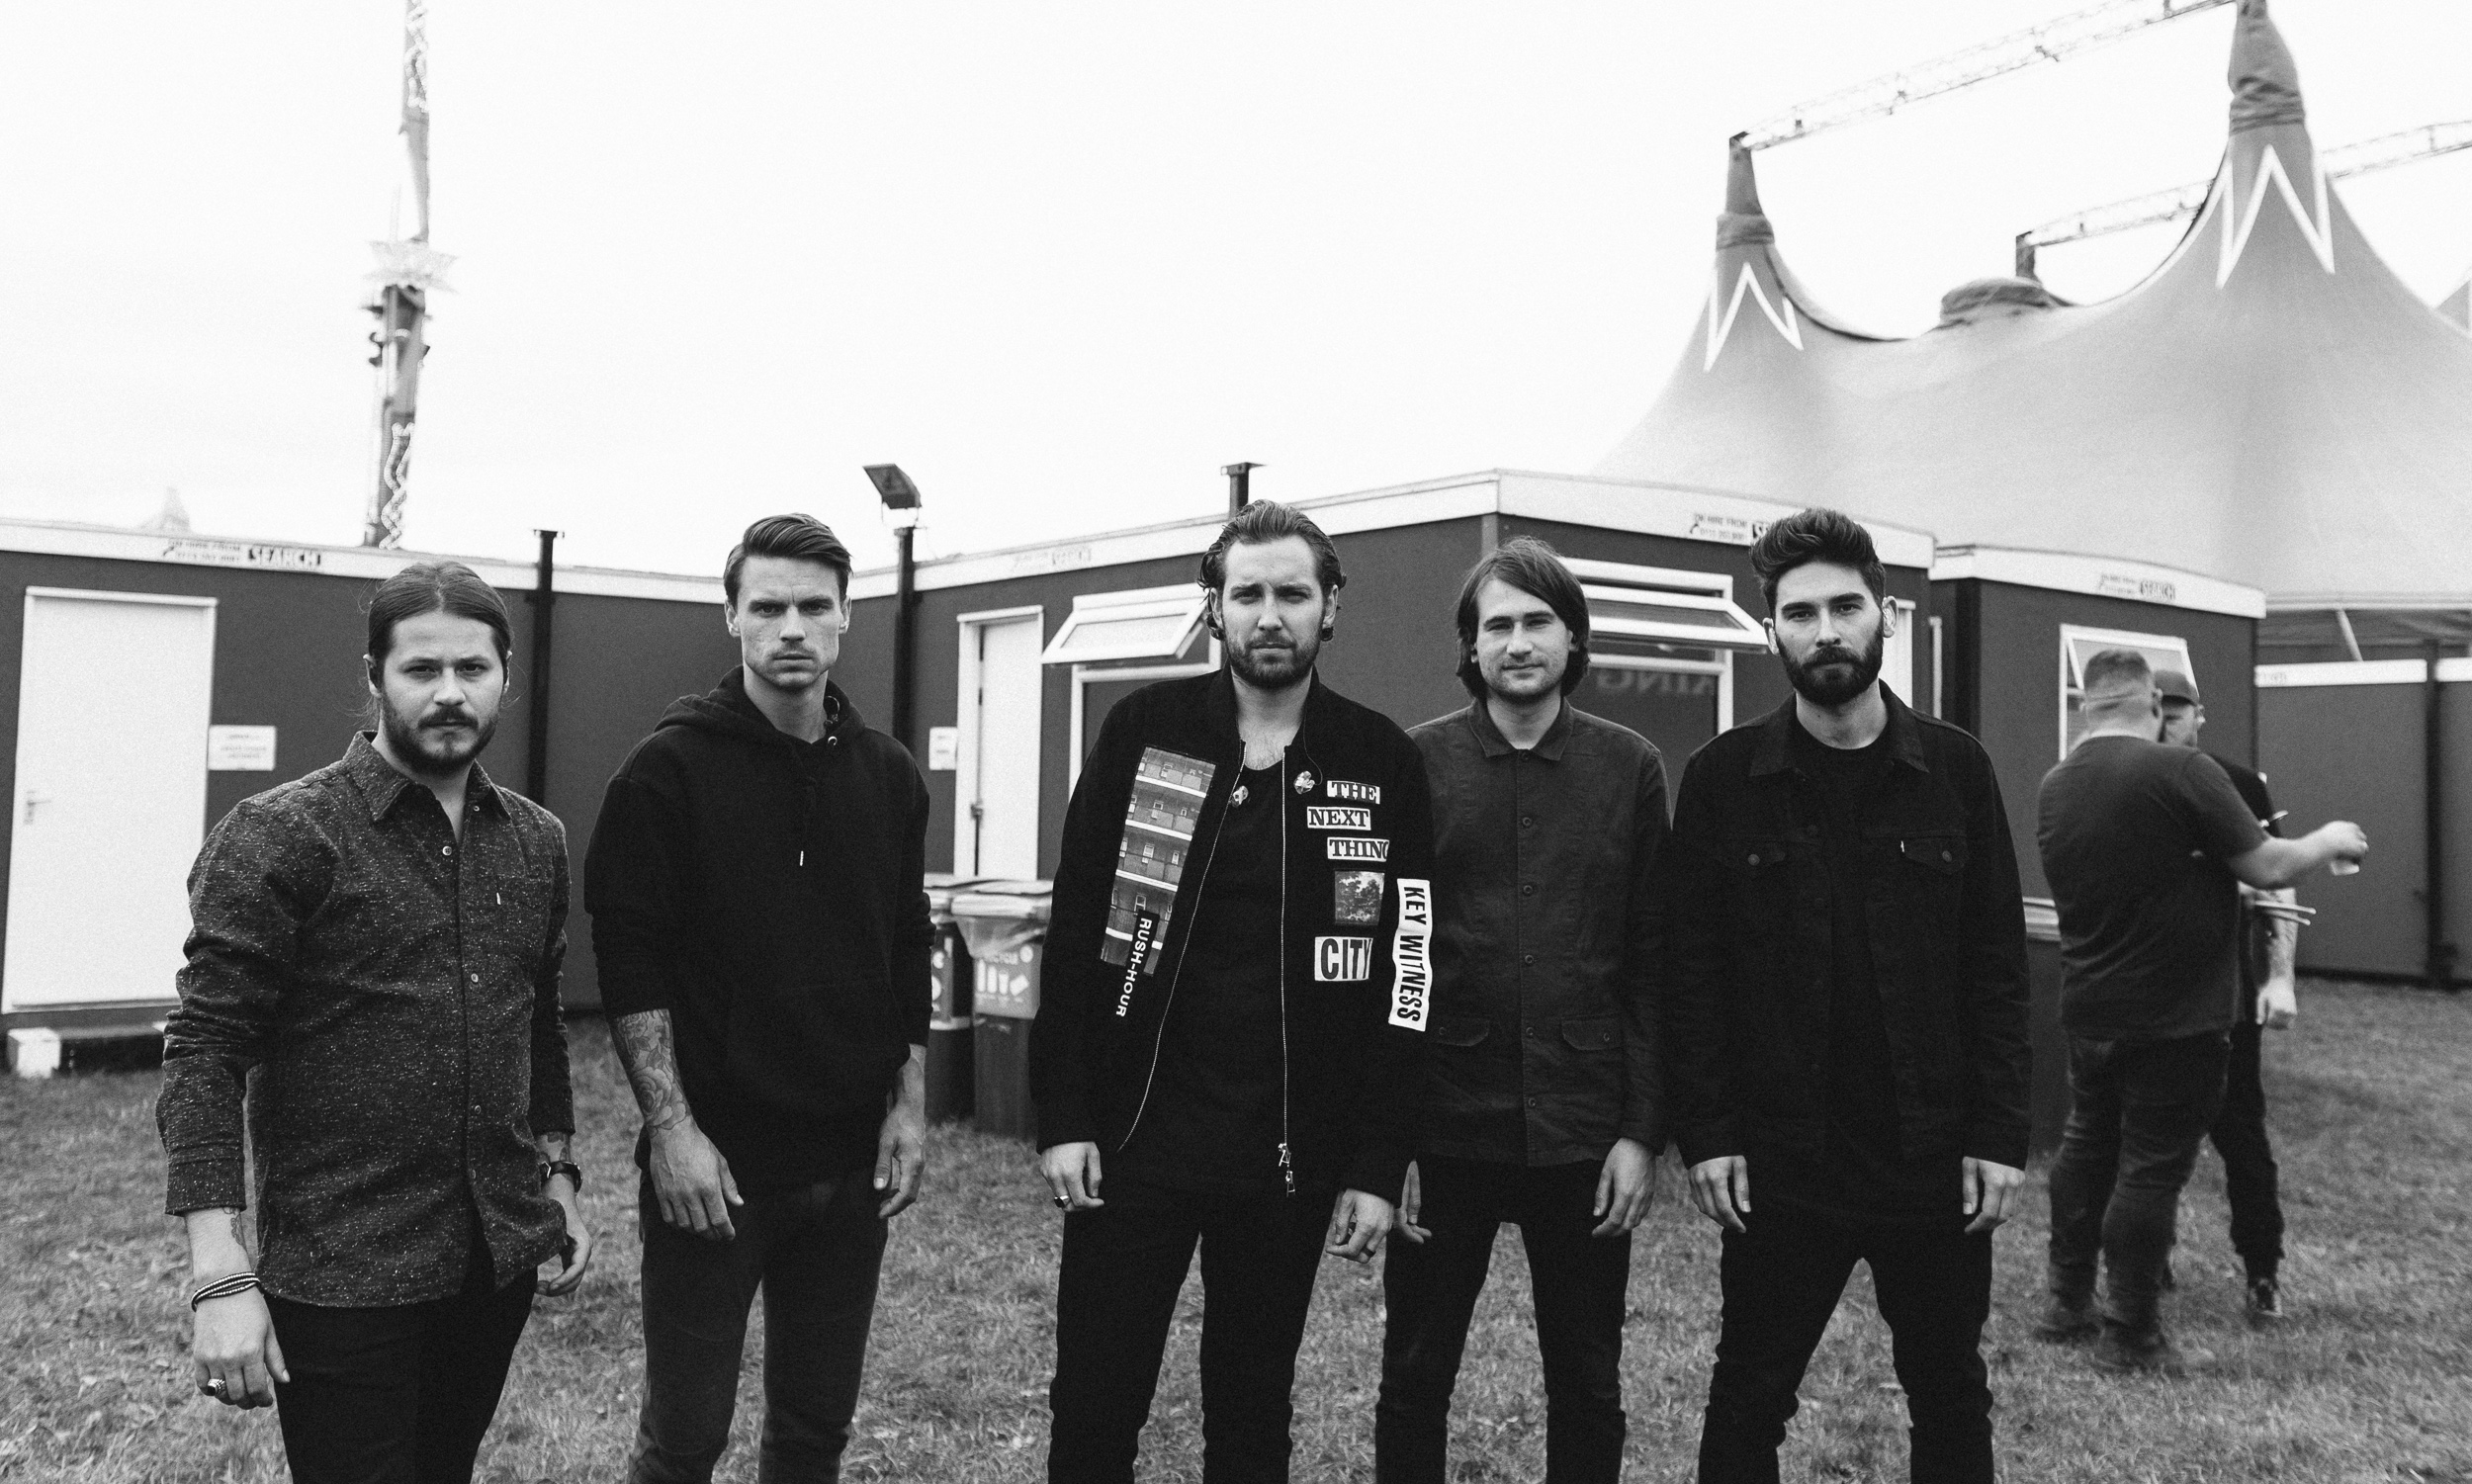 You Me At Six at Leeds Festival by Adam Elmakias